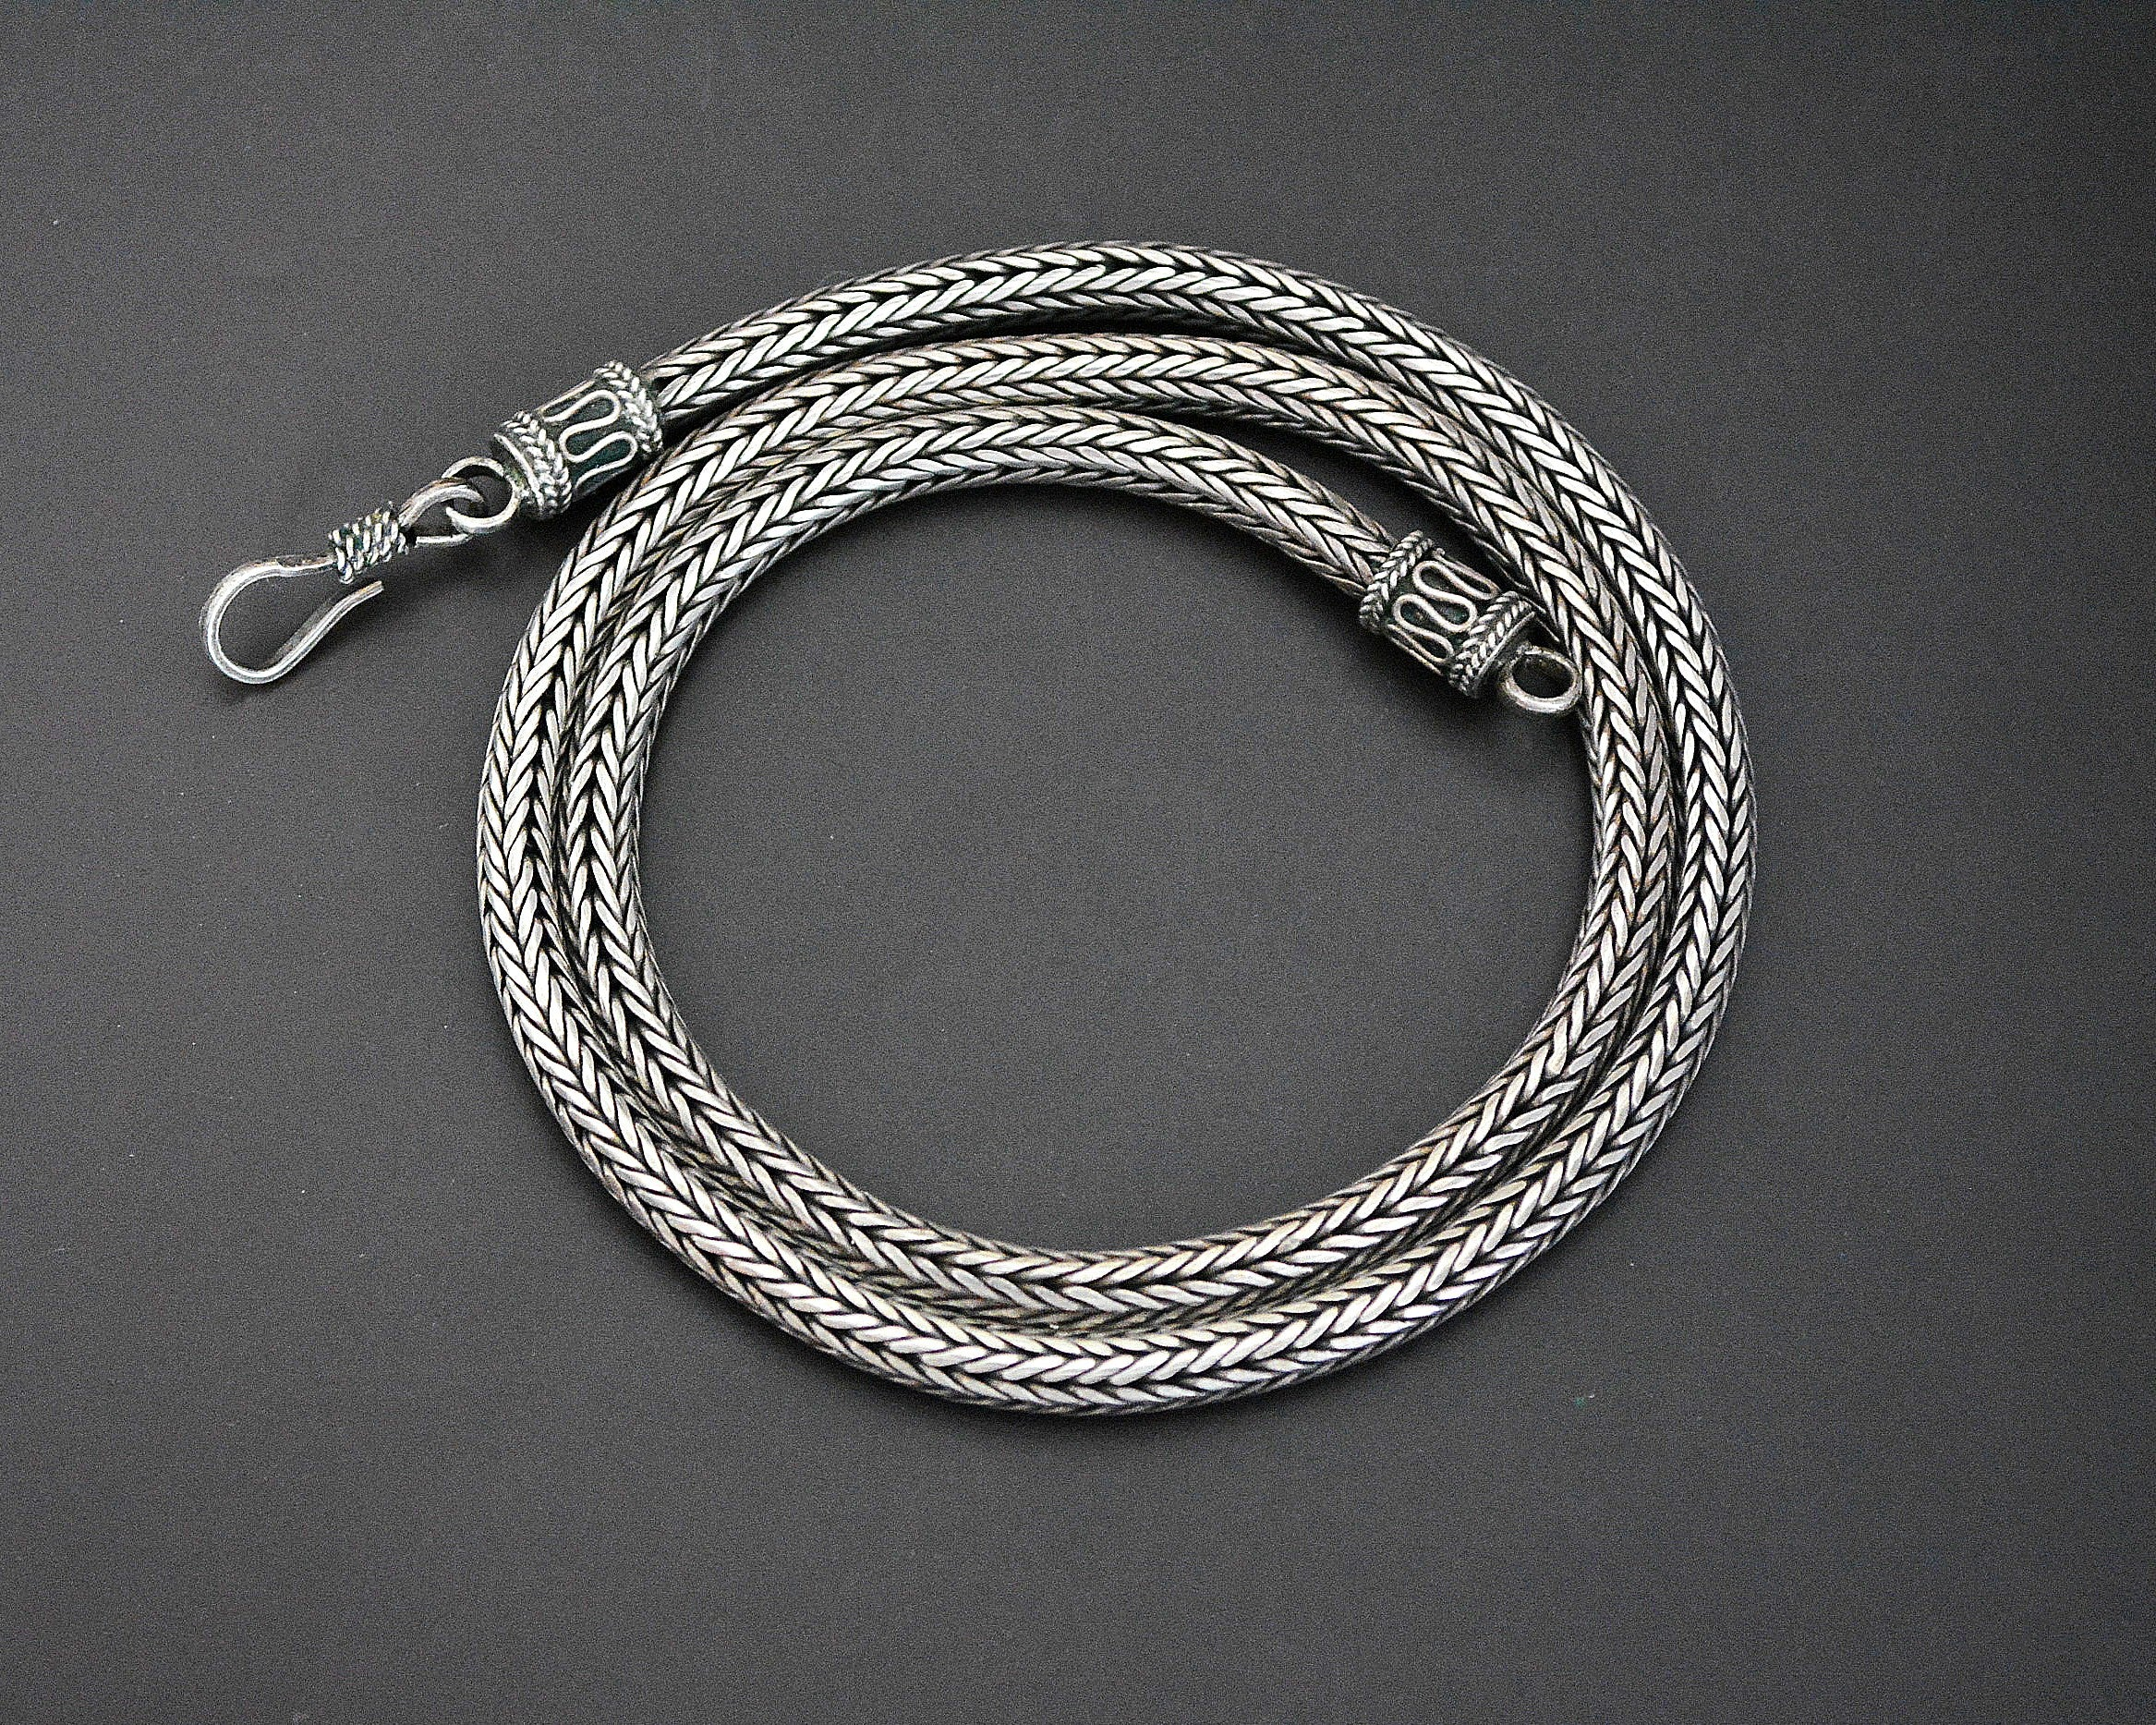 Bali Braided Snake Chain Necklace - Sterling Silver